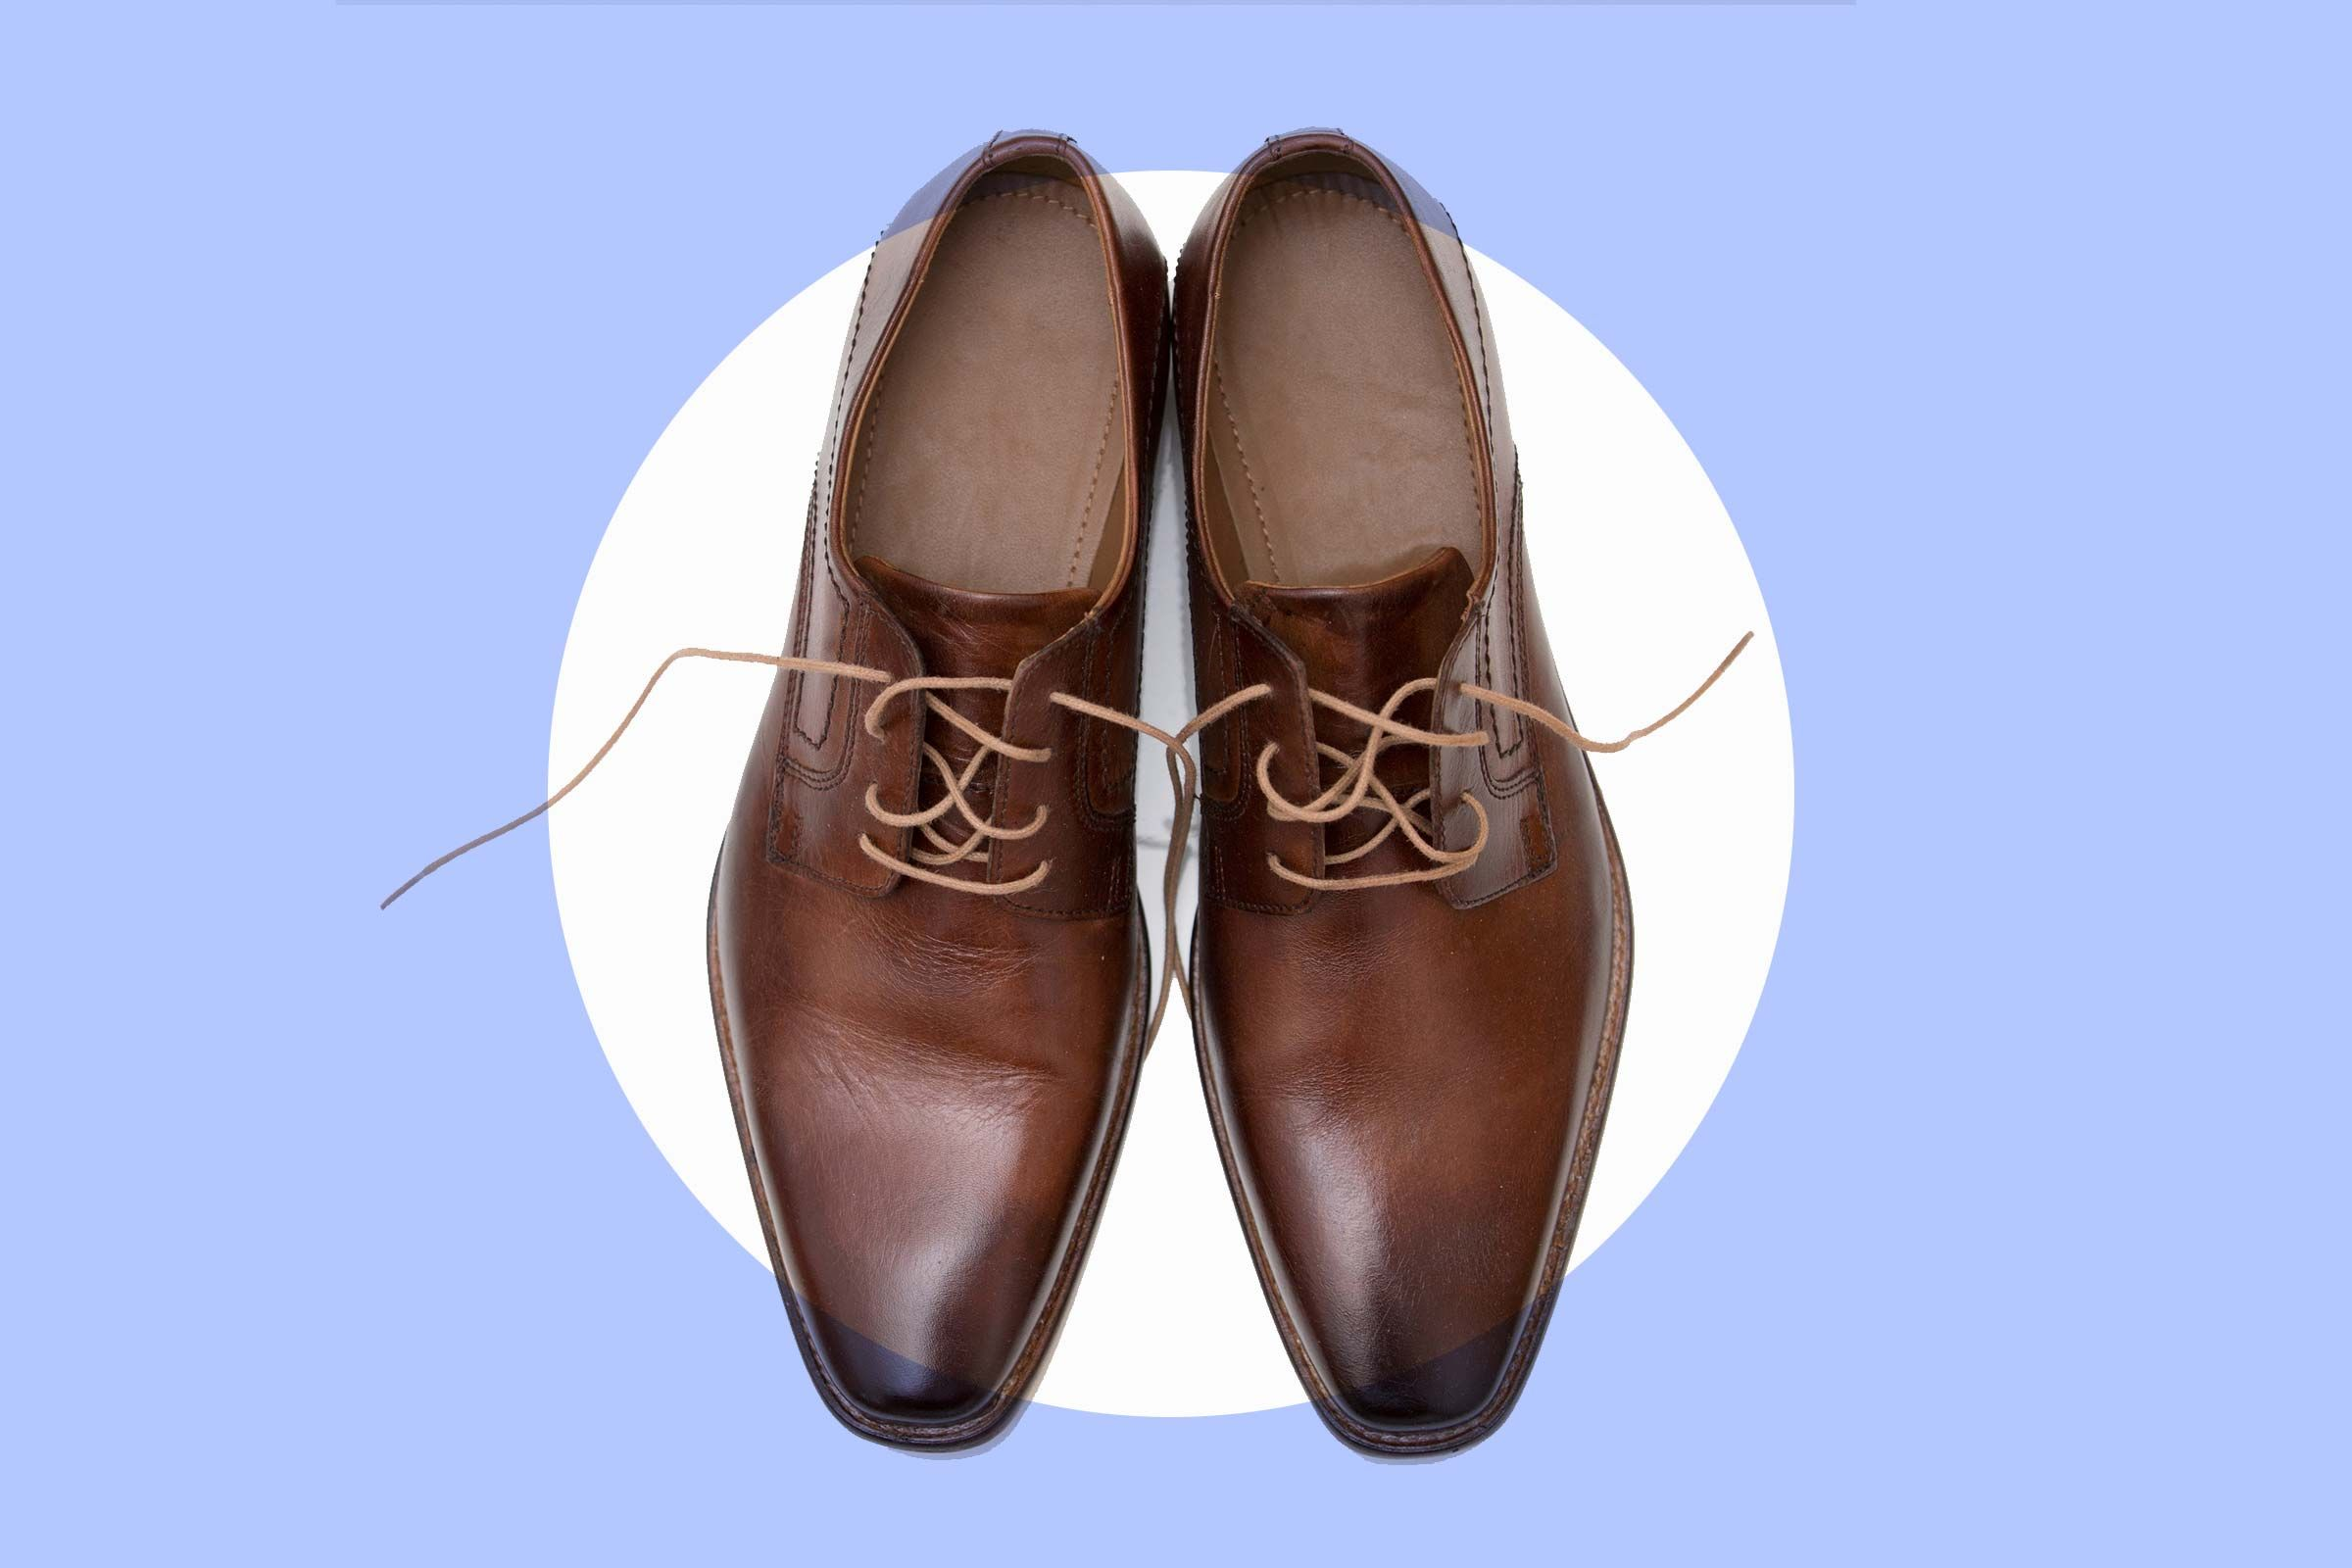 how to clean white shoelaces without bleach